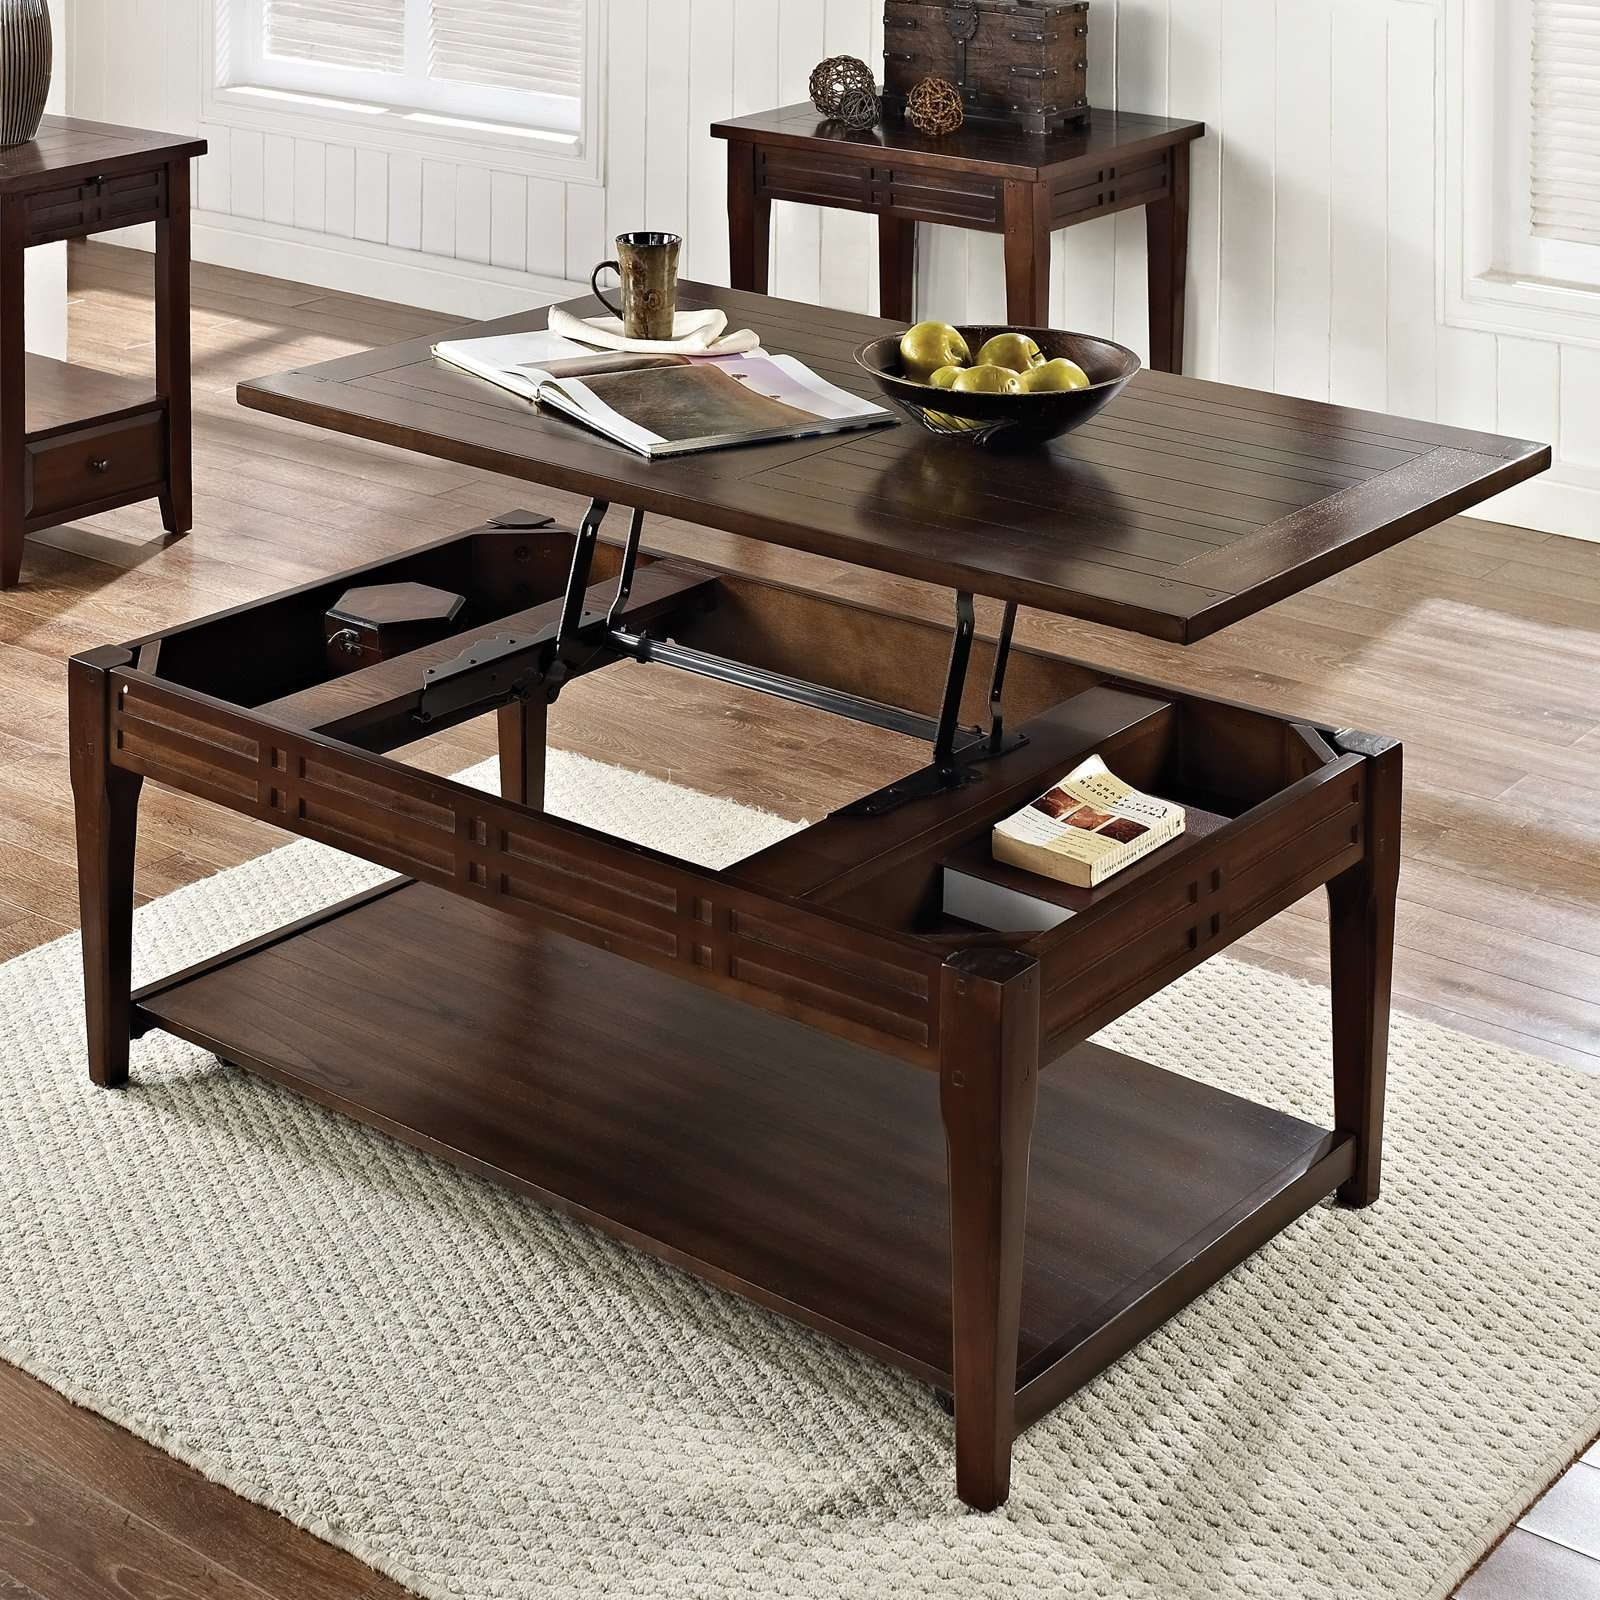 Fashionable Coffee Tables With Lift Top And Storage Inside Turner Lift Top Coffee Table – Espresso (View 11 of 20)